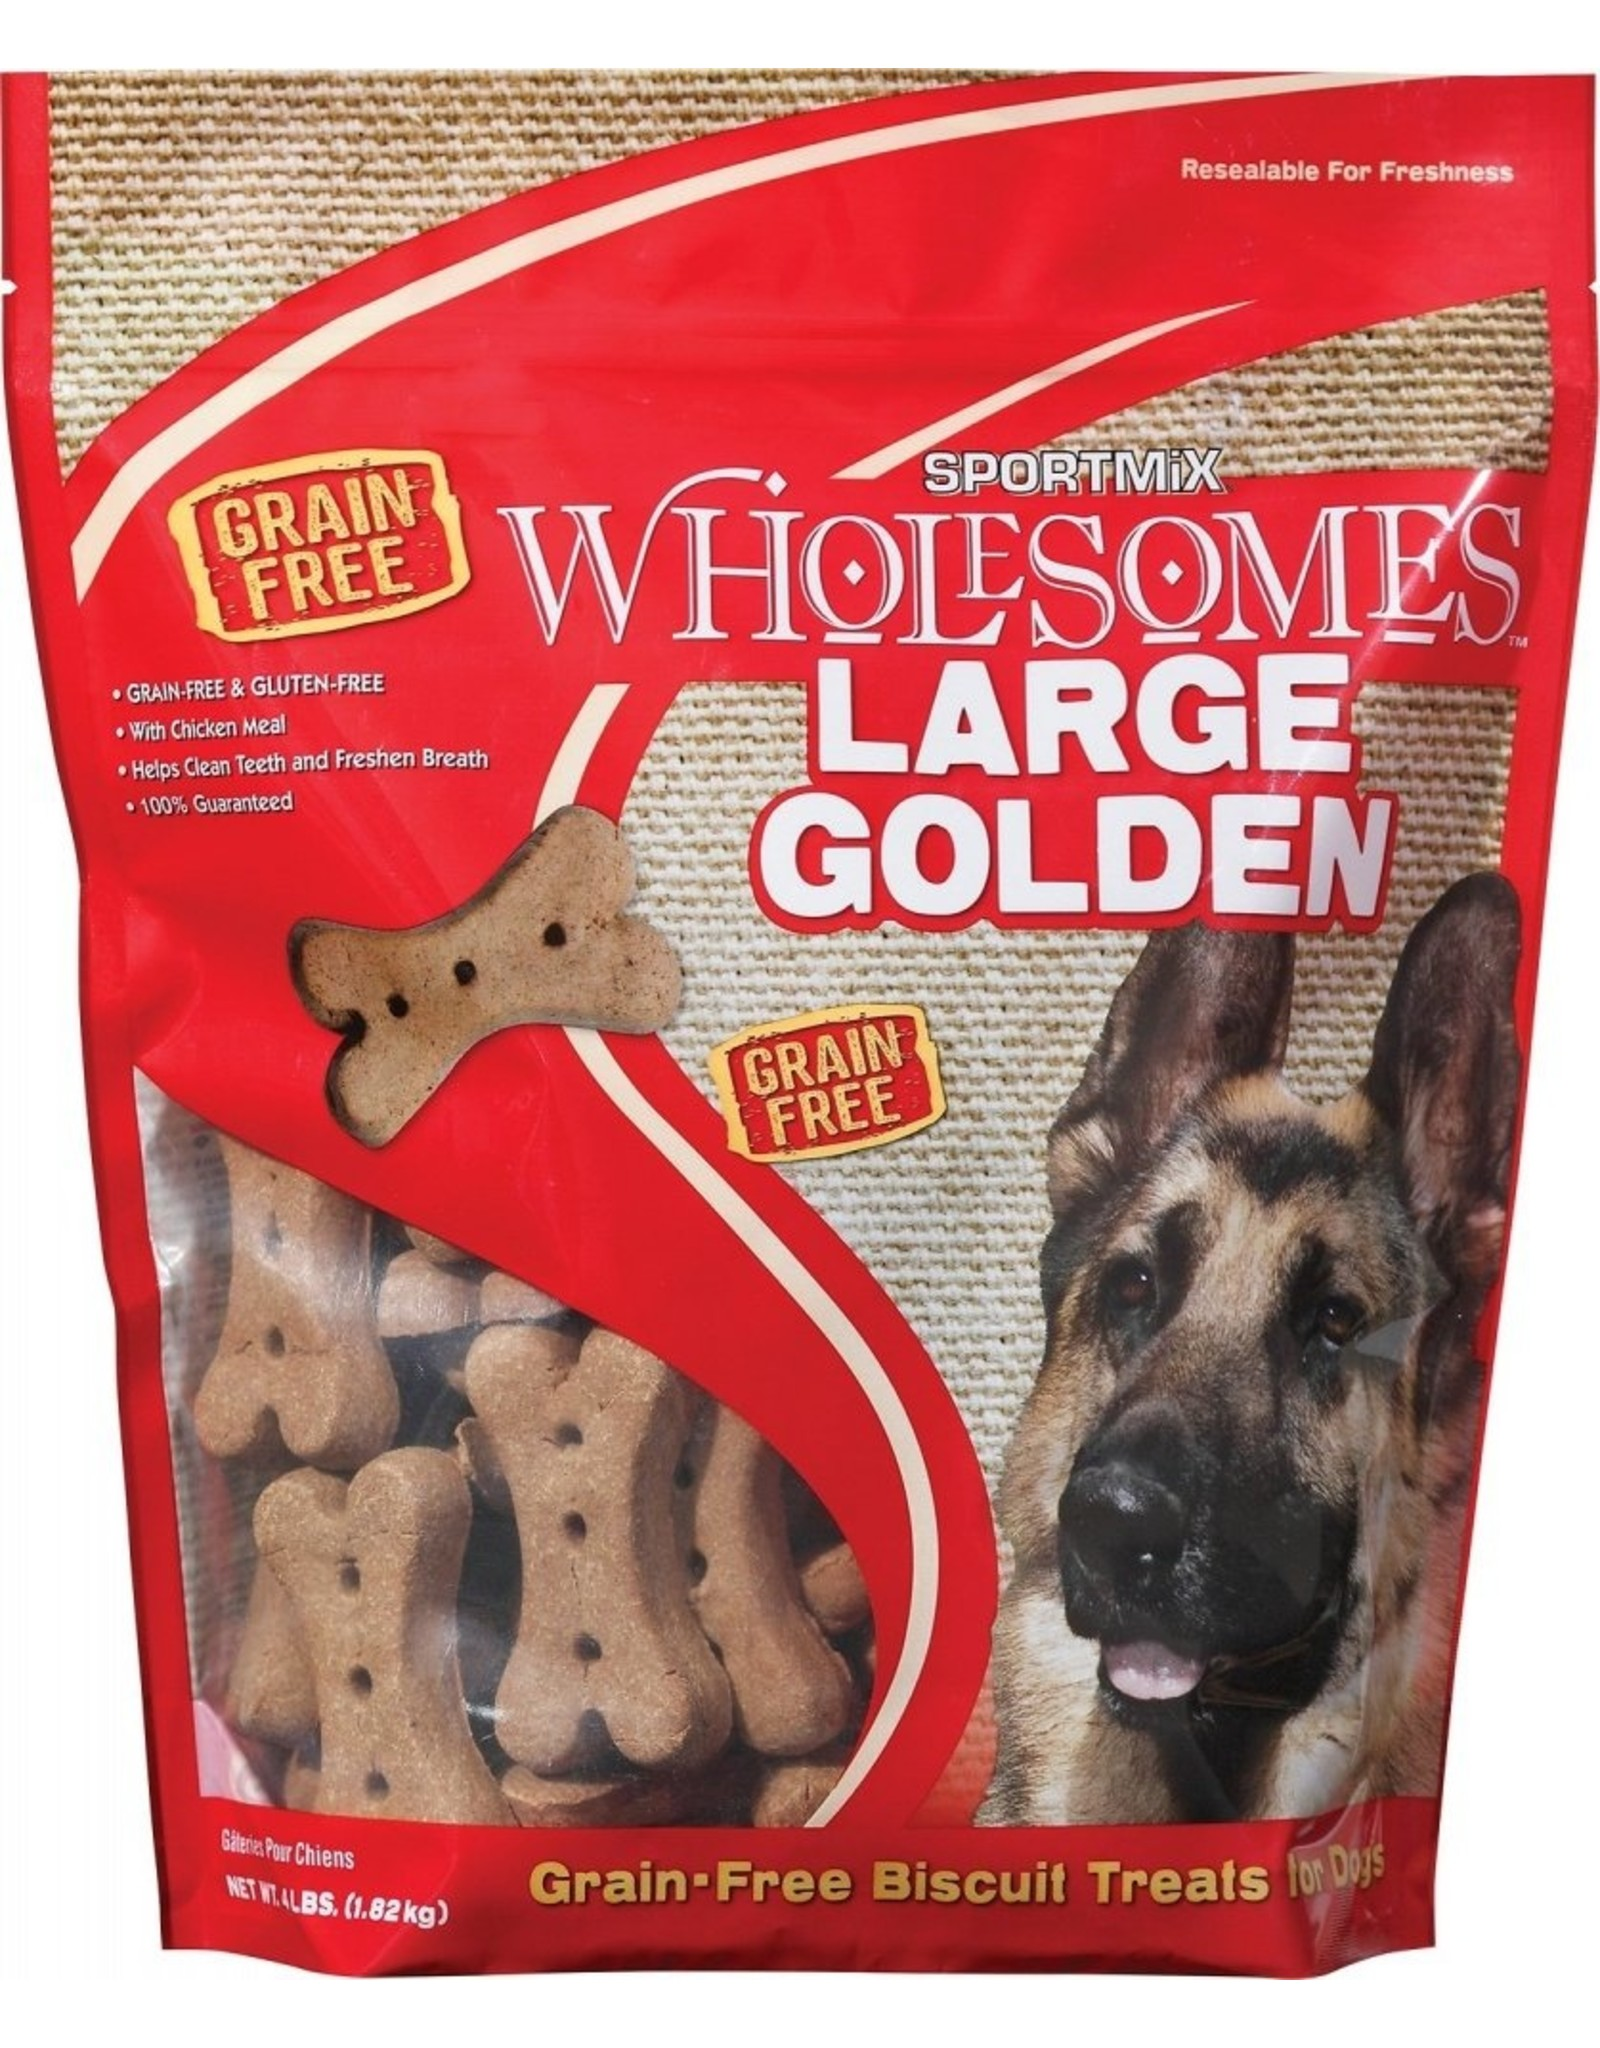 Sportmix SPORTMiX Wholesomes Large Golden Grain-Free Biscuit Dog Treats, 4-lb bag